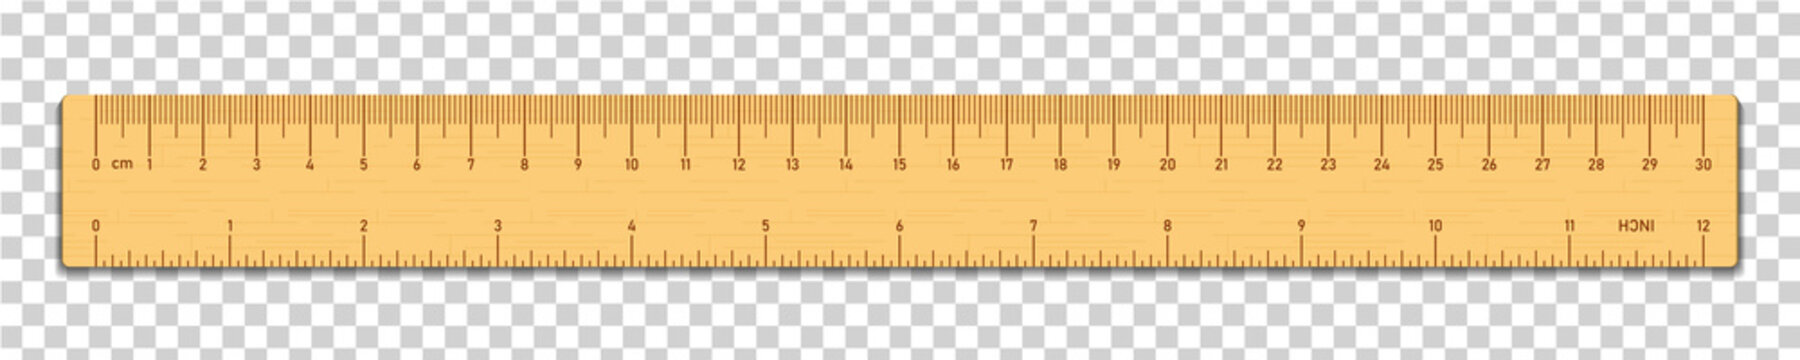 Realistic wooden tape ruler isolated on transparent background. Double sided measurement in cm and inches. Vector illustration